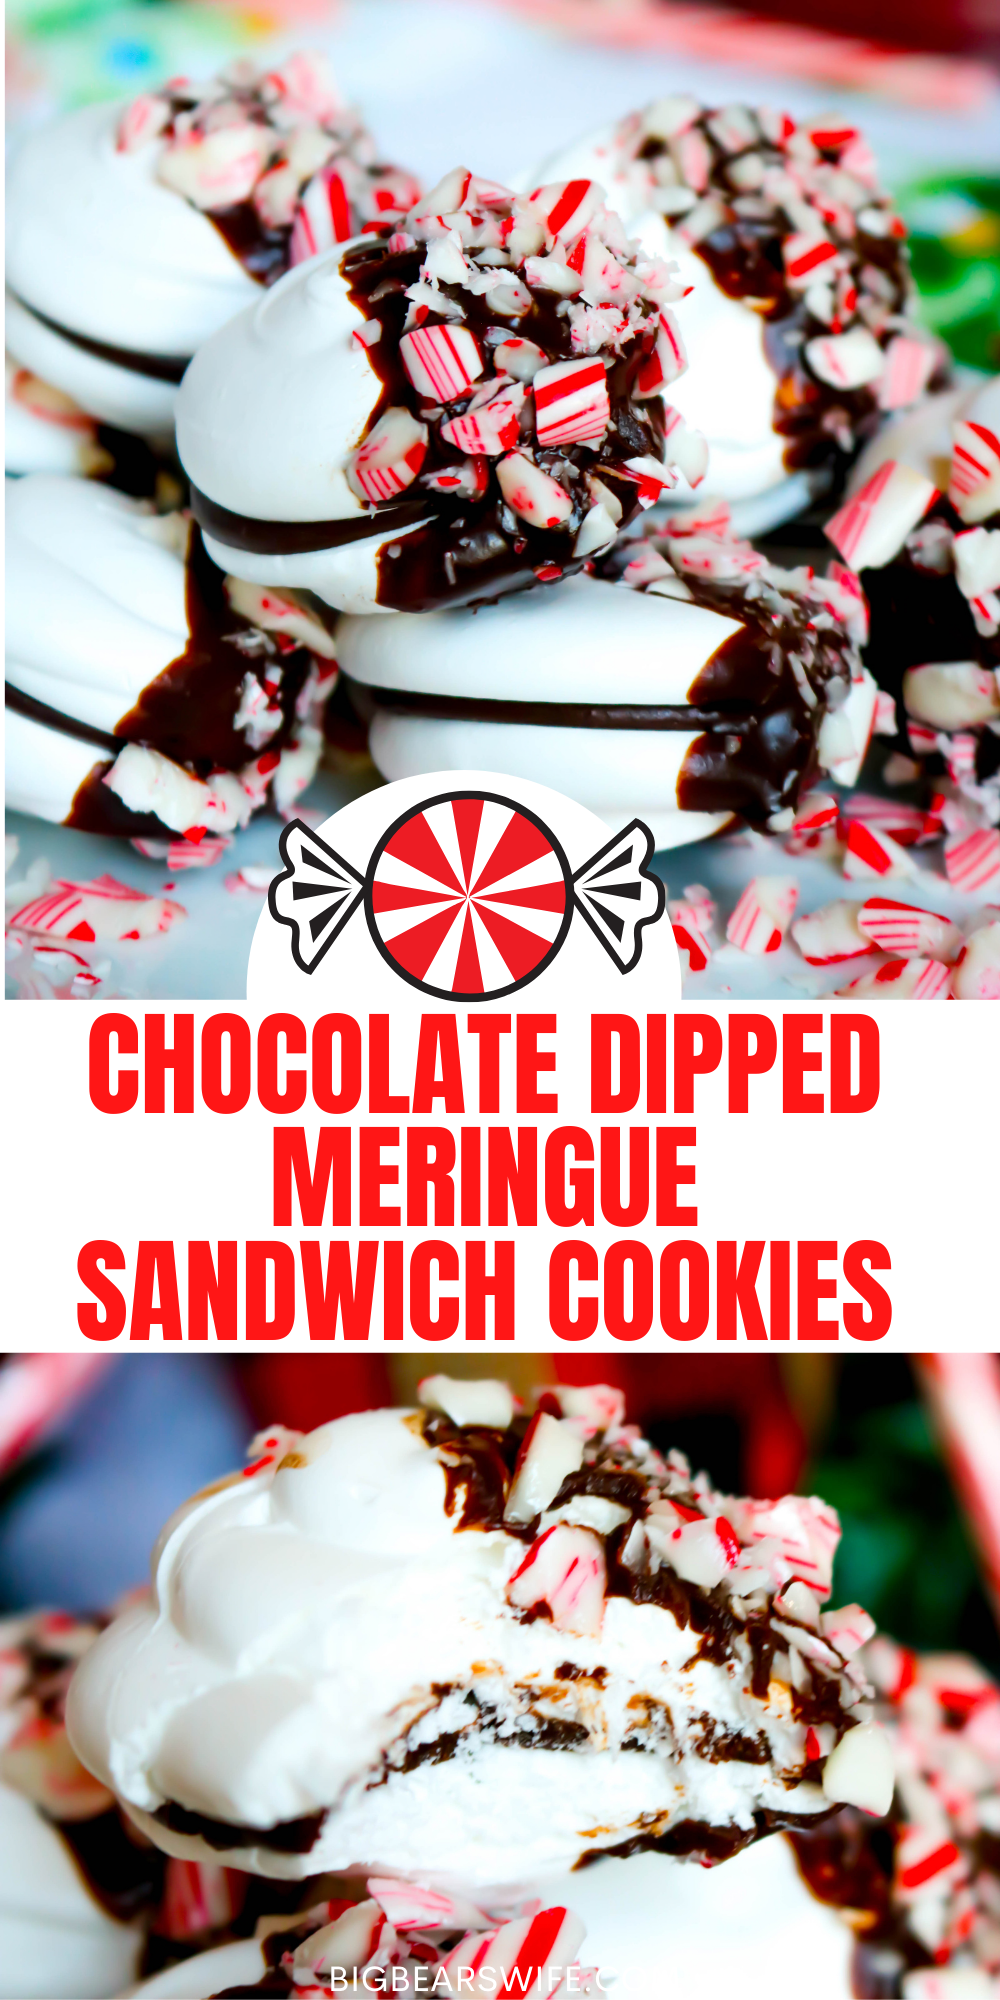 These Chocolate-Dipped Meringue Sandwich Cookies are just right for a holiday gathering and great to give as a homemade gift from the kitchen. Easy meringue sandwich cookies are filled with a chocolate ganache, dipped in chocolate and sprinkled with crushed candy canes for the ideal festive treat! via @bigbearswife